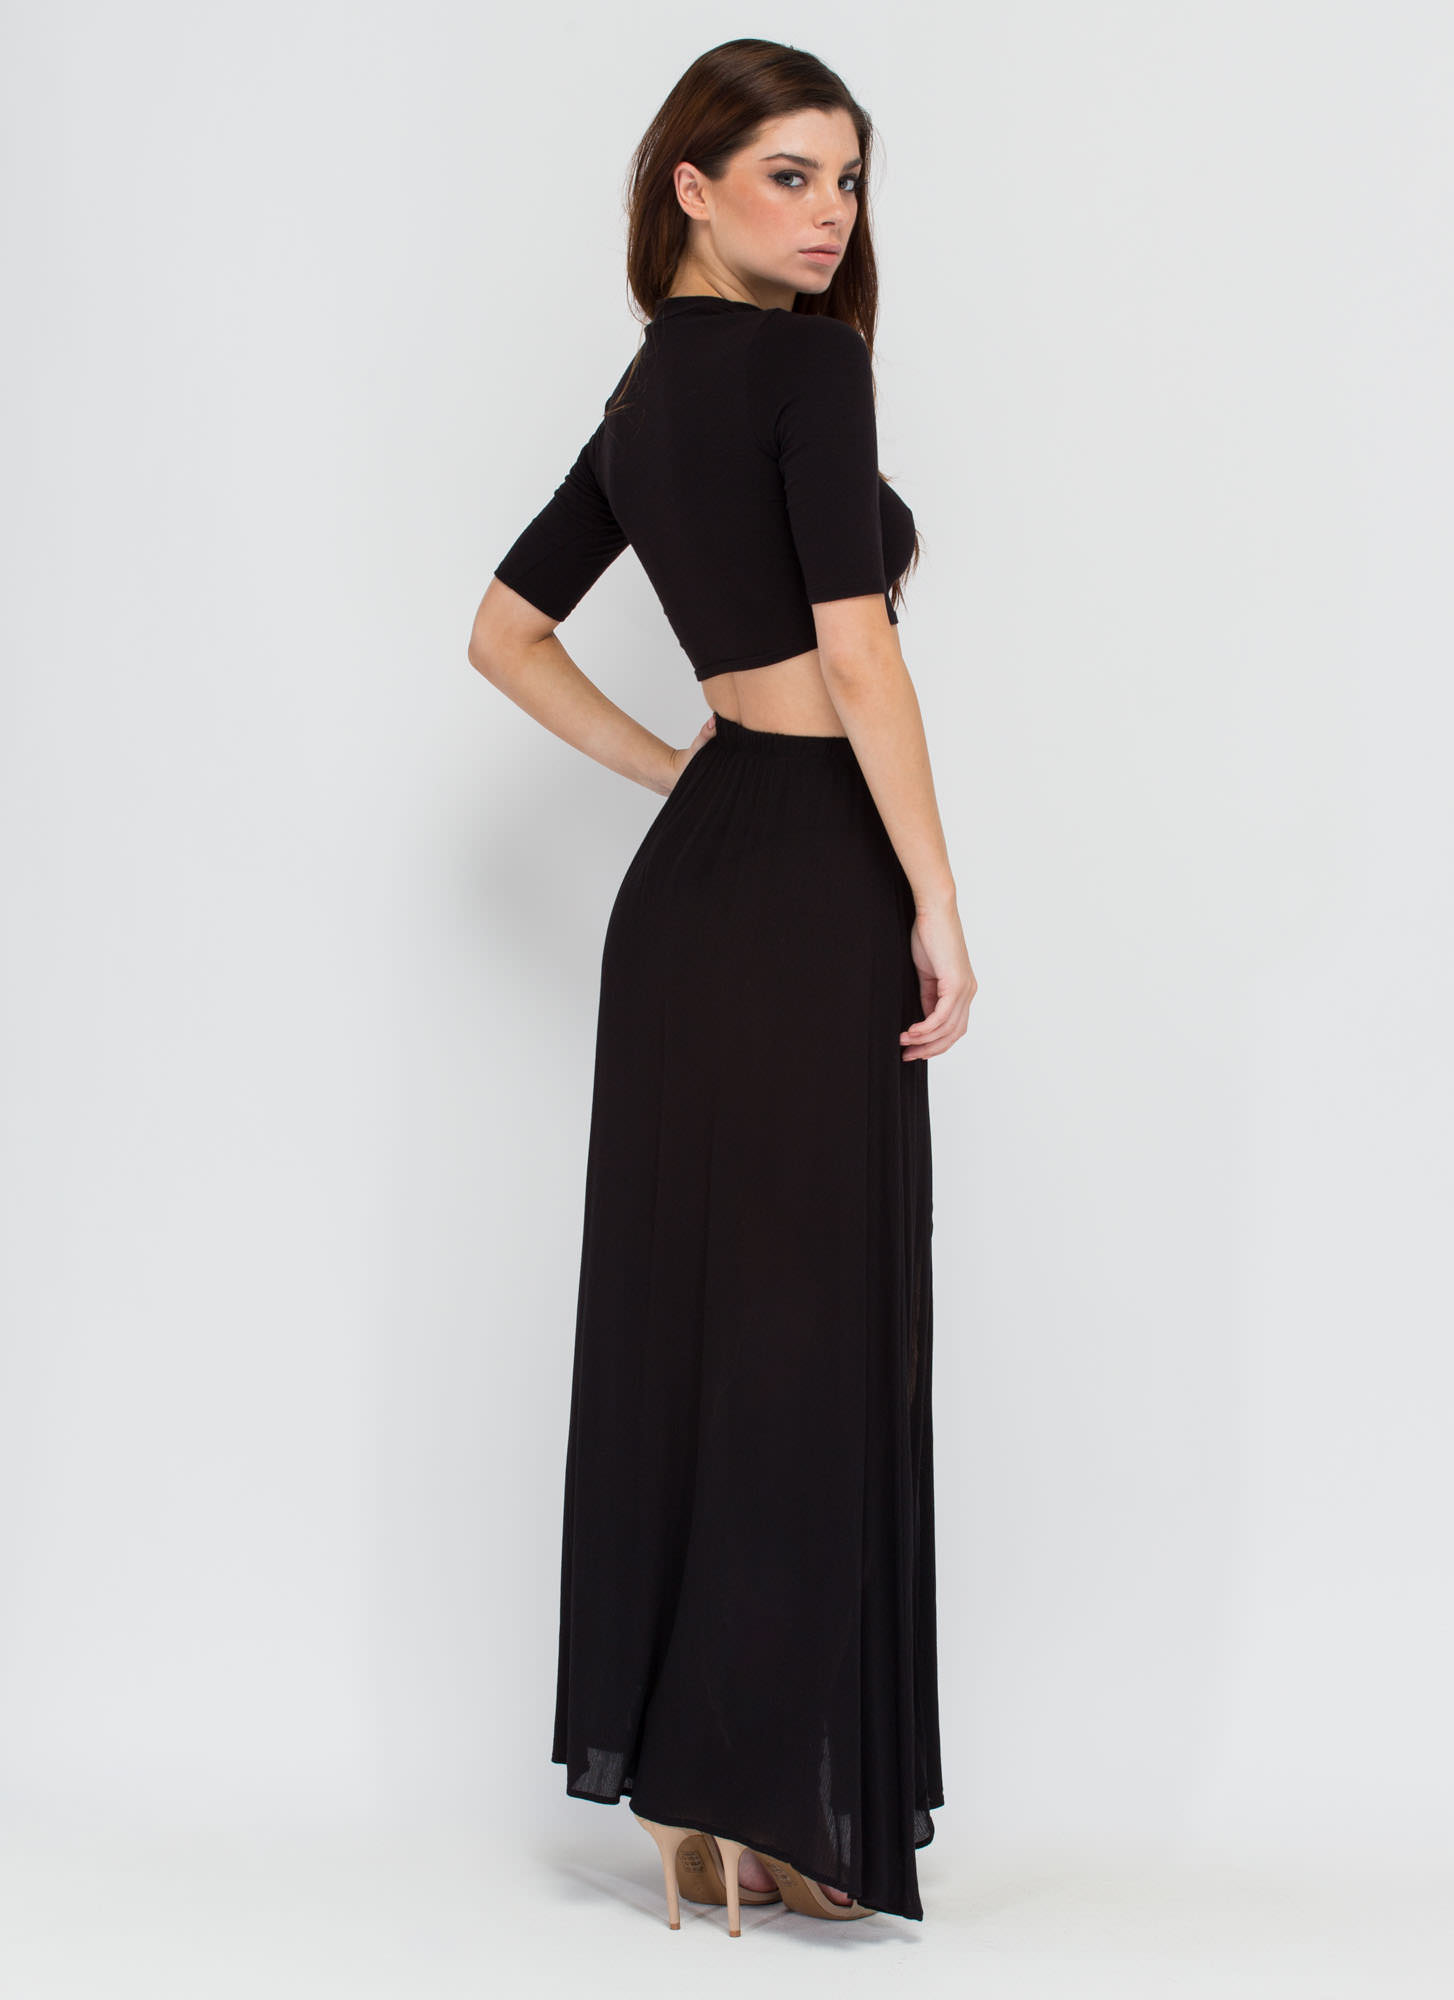 Walk In The Park Double-Slit Maxi Skirt BLACK (Final Sale)